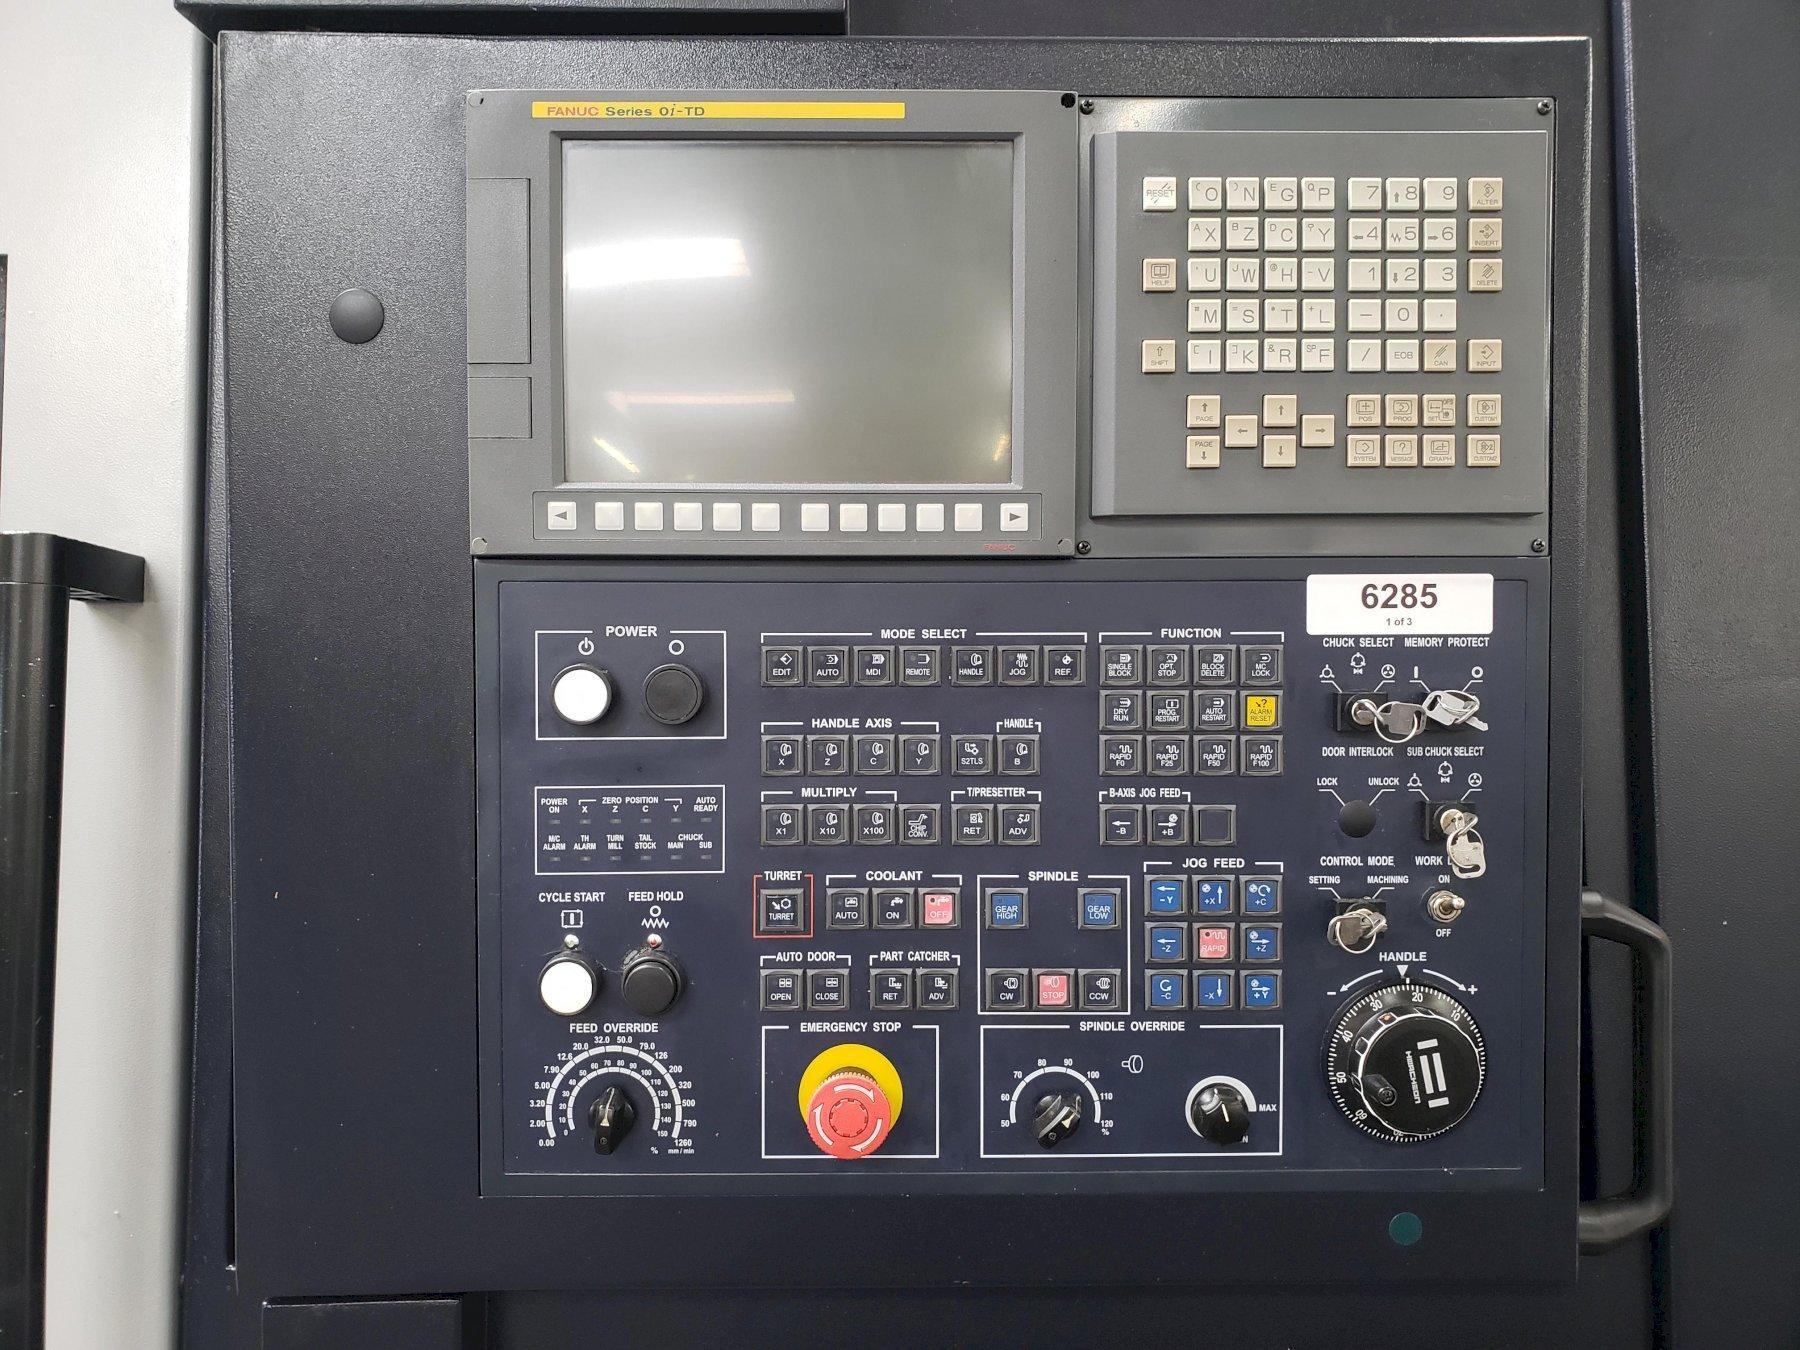 Hwacheon Hi-Tech 350A YSMC CNC Lathe 2015 with: Fanuc Series Oi-TD CNC Control, Y-Axis, Sub Spindle, Coolant Tank, and Chip Conveyor.